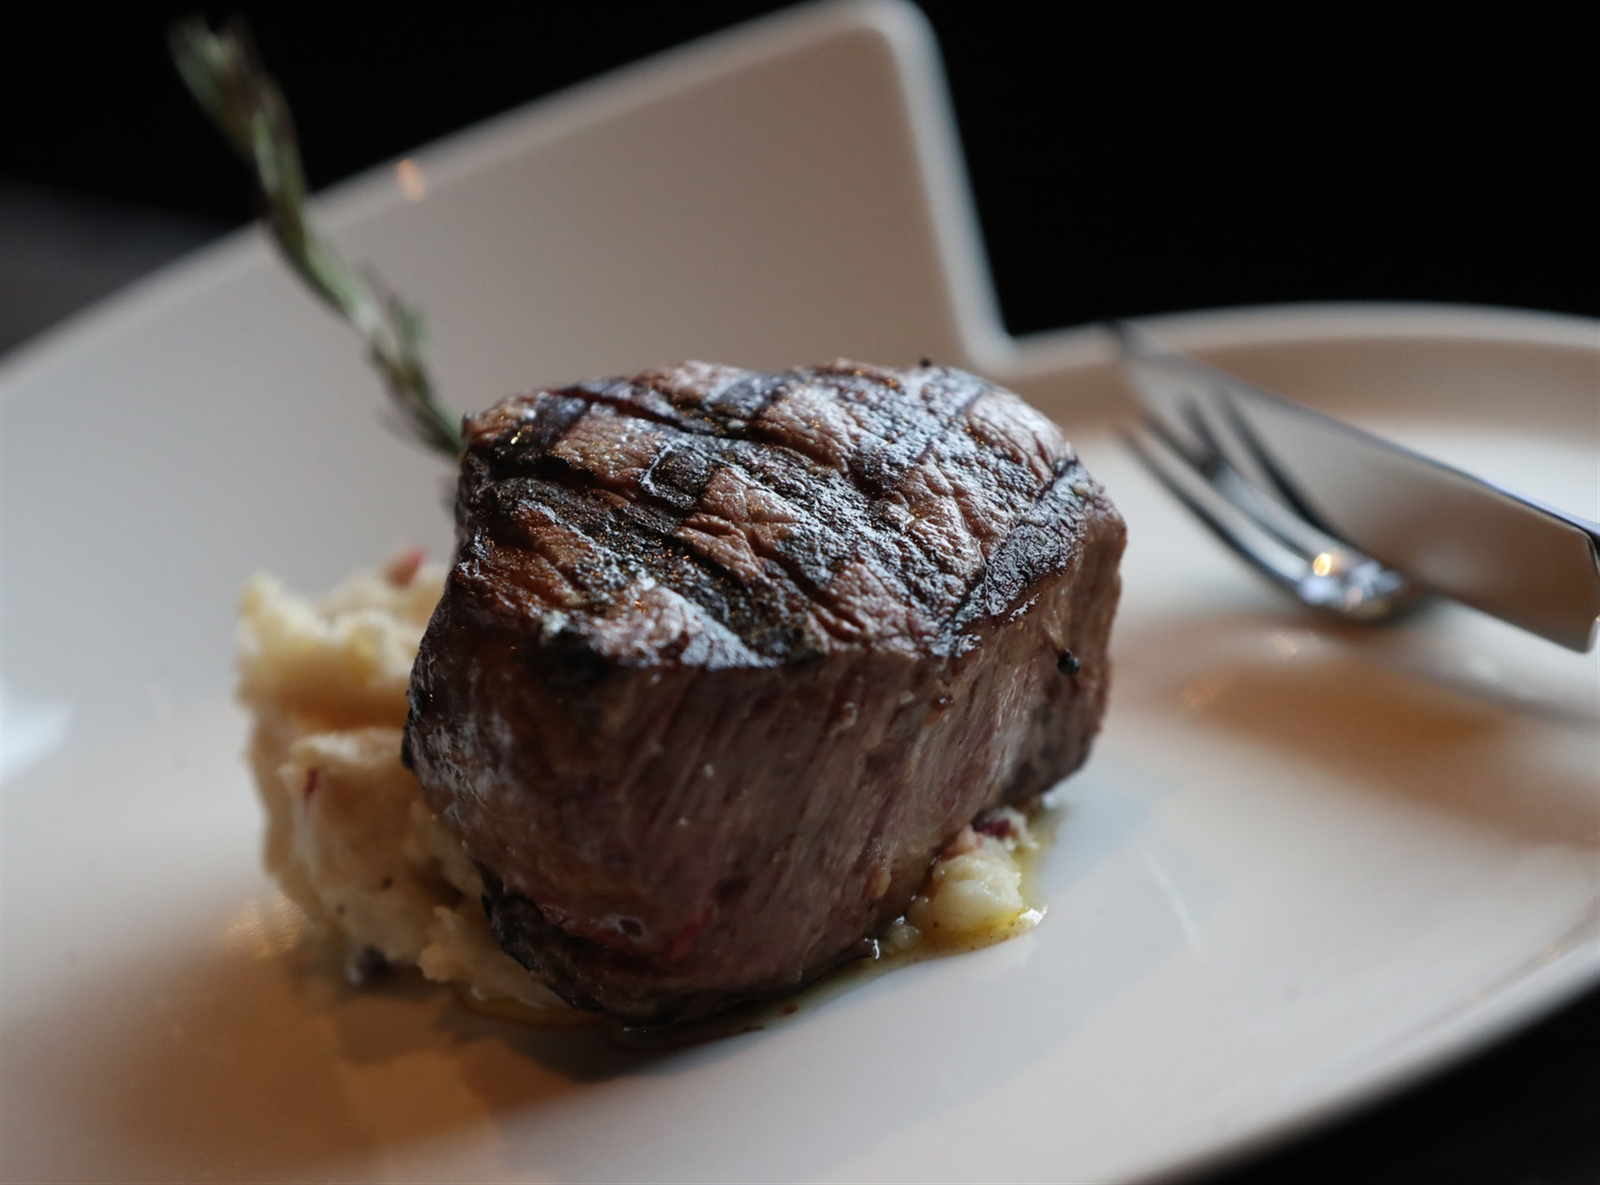 The filet mignon is a prime 8-ounce tenderloin of Black Angus beef from Roseda Farm in Monkton, Md. The meat is cast-iron roasted with herbs and sea salt.